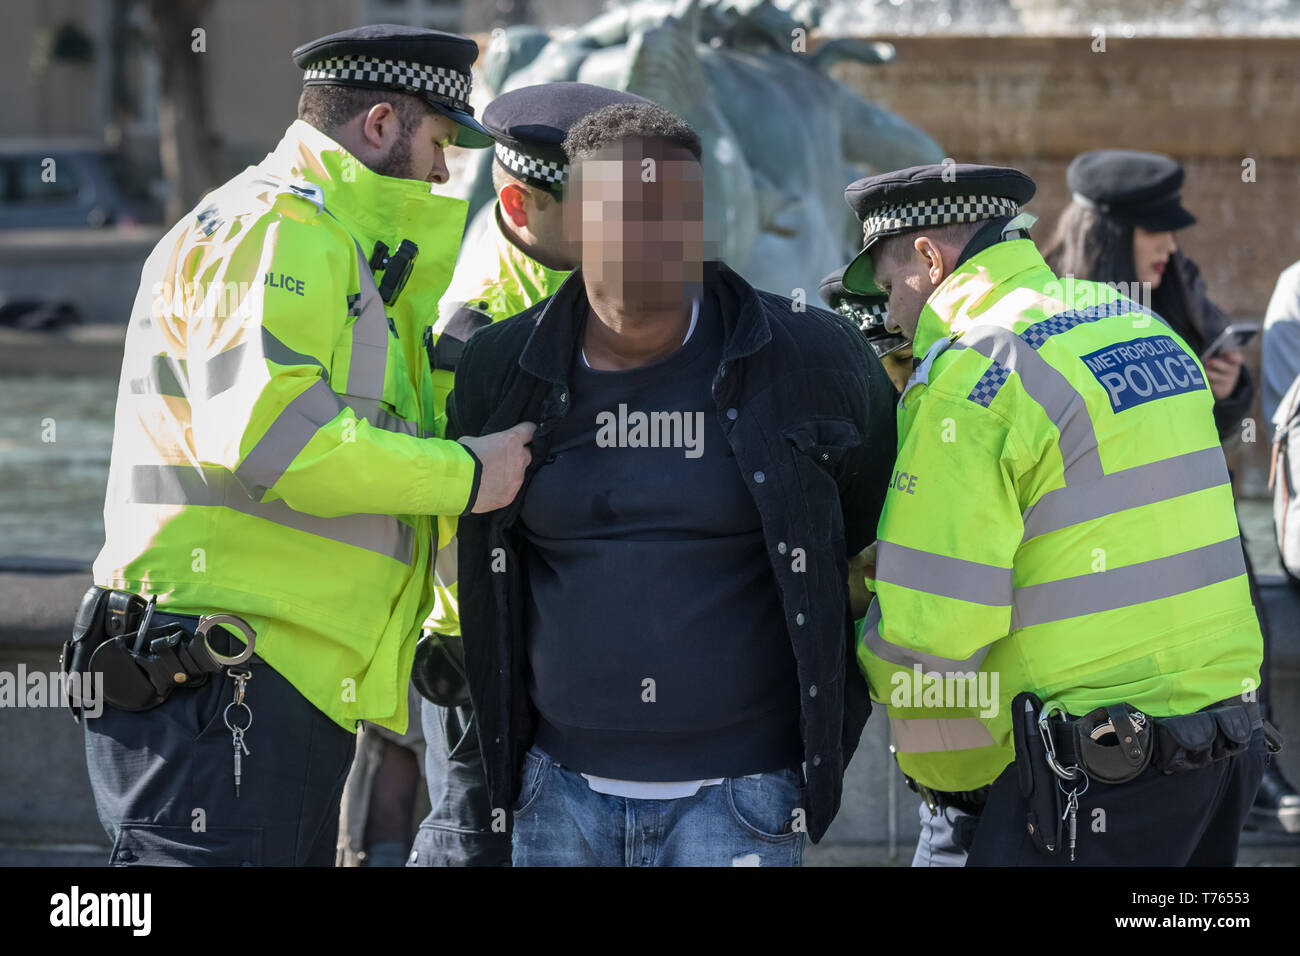 A young black male is stopped and searched during midday by four met police officers in Trafalgar Square, London, UK. - Stock Image